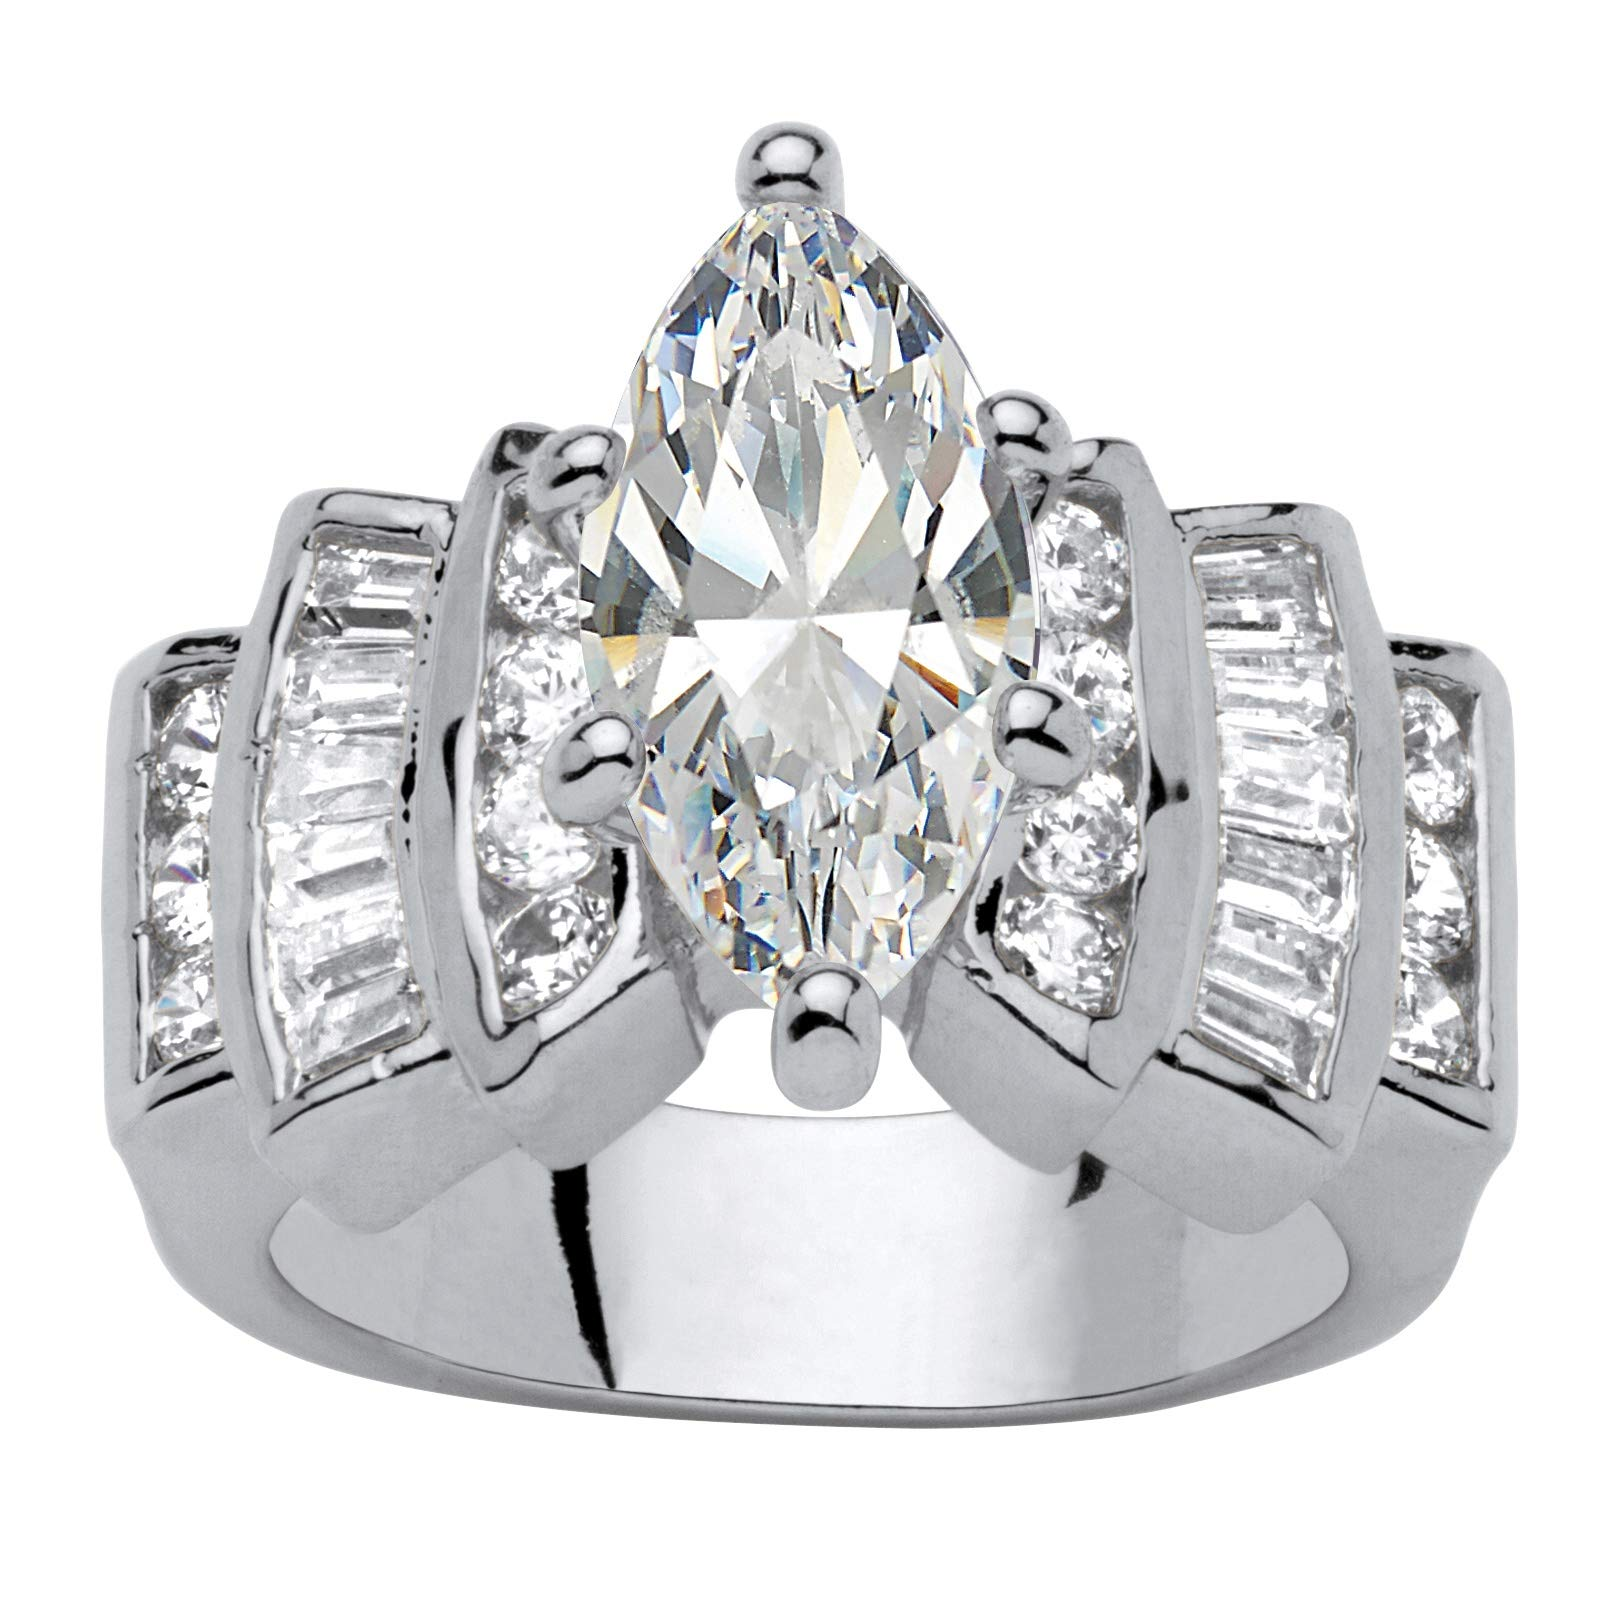 Palm Beach Jewelry Silver Tone Marquise Cut Cubic Zirconia Step Top Engagement Ring Size 7